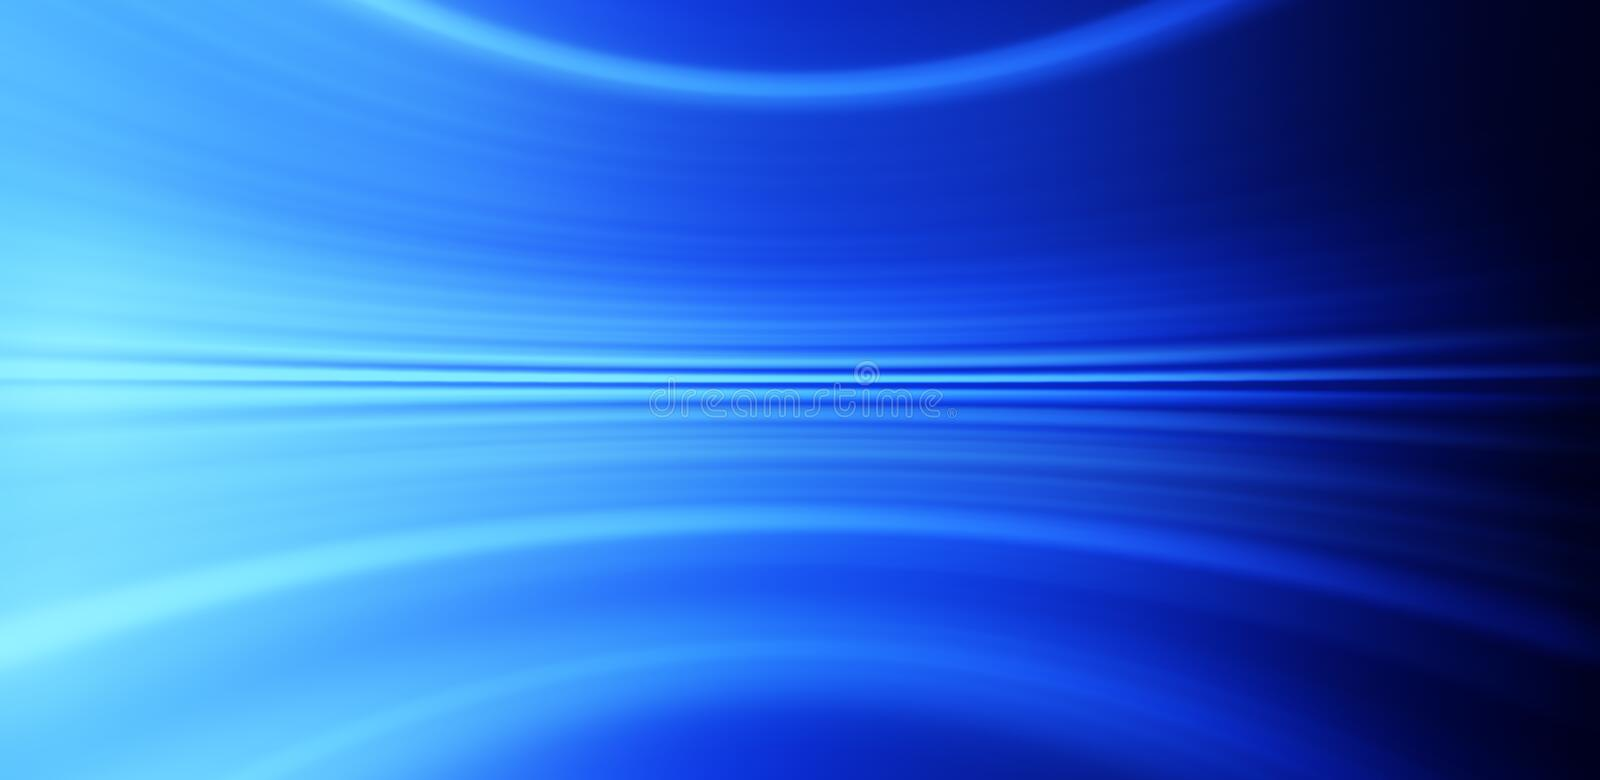 Abstract Blue Banner Background. A panorama abstract blue background with a curving or bending feel